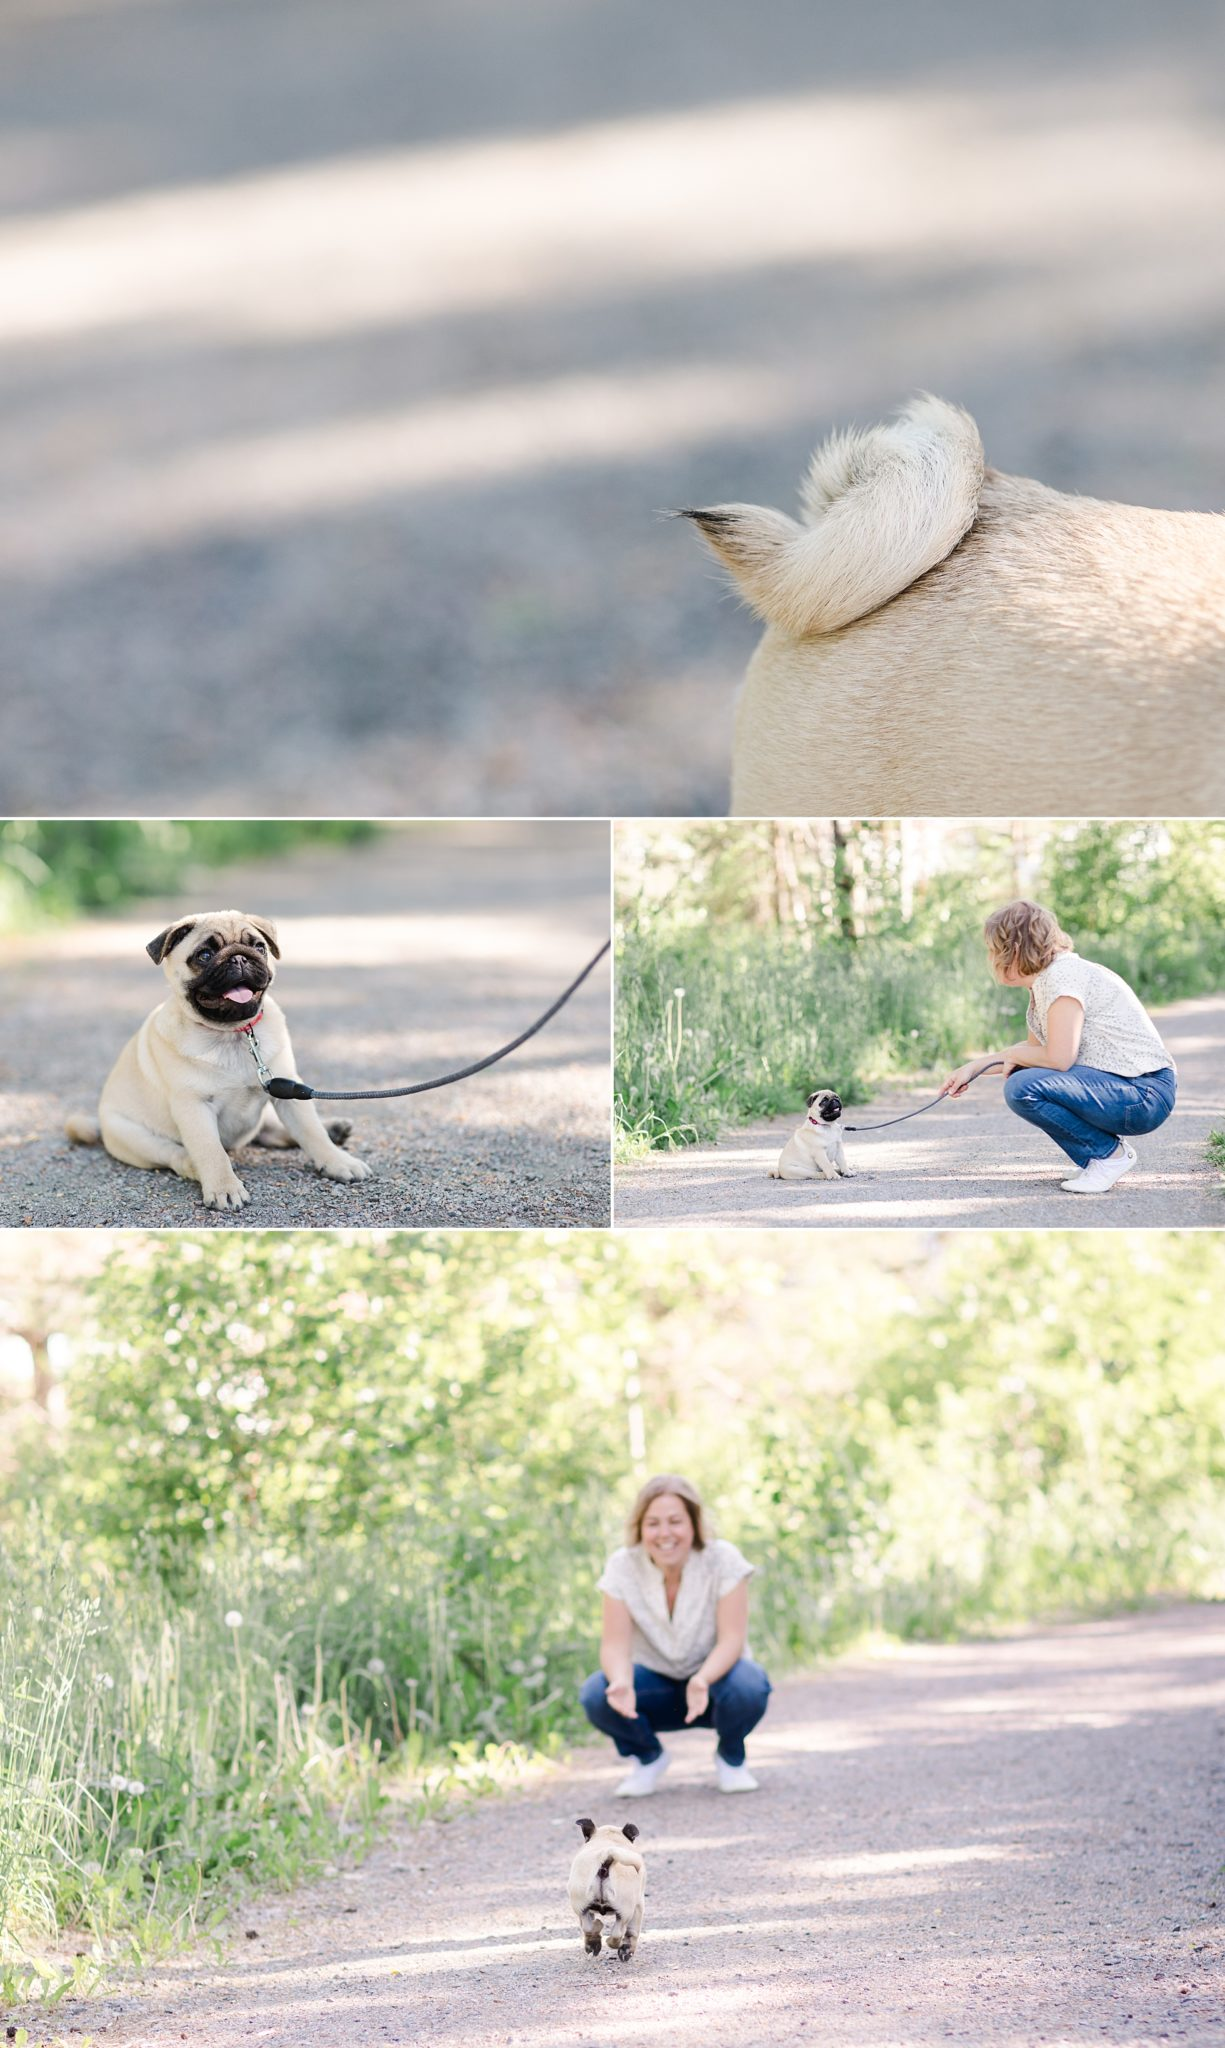 A collage of cute photos of a pug puppy